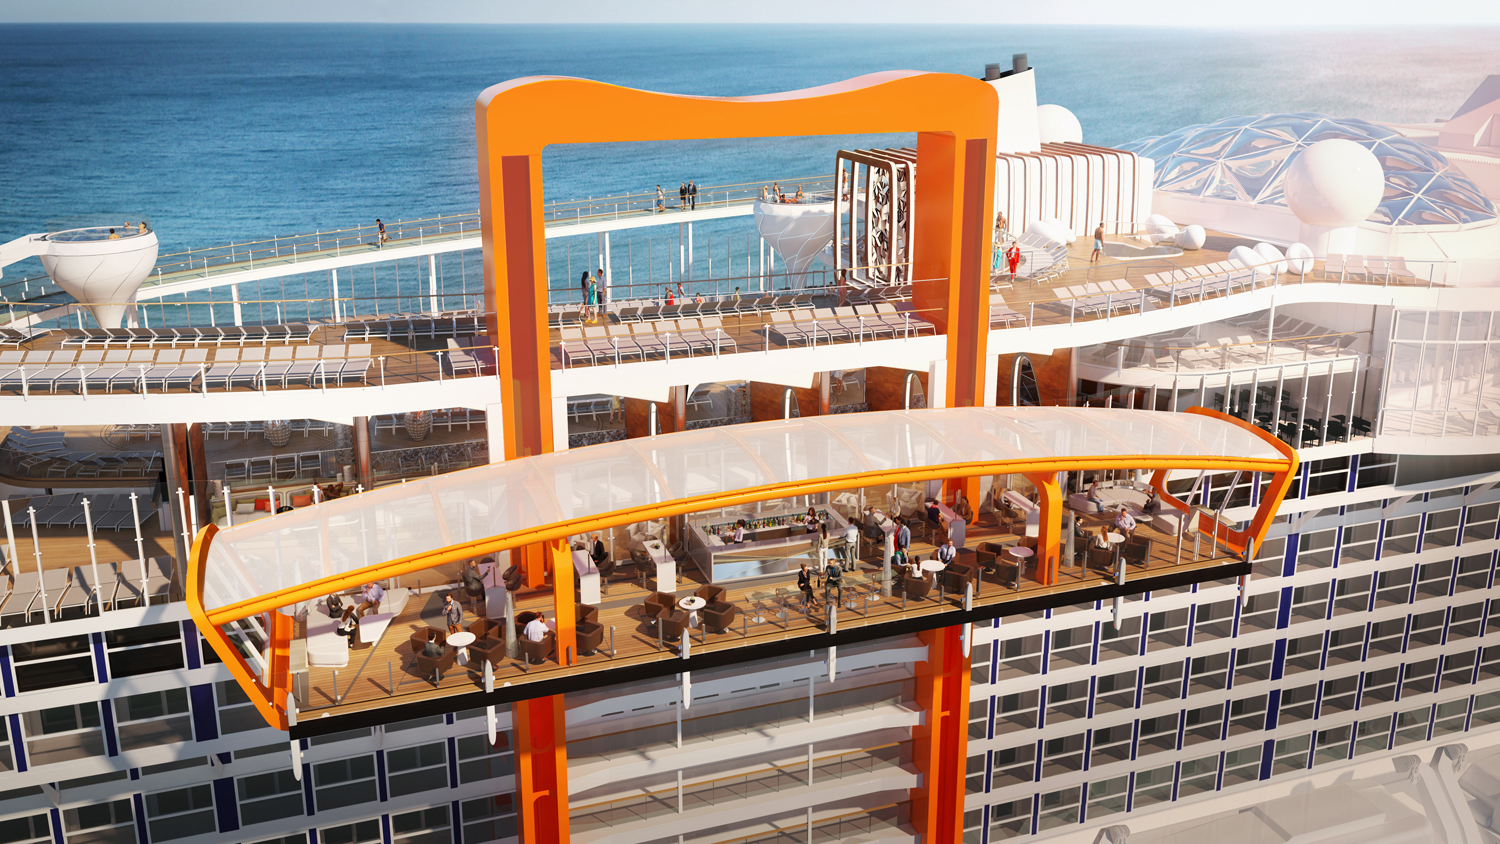 The Magic Carpet on the Celebrity Edge will moves up and down the ship's 16 decks to deliver different experiences at each one.